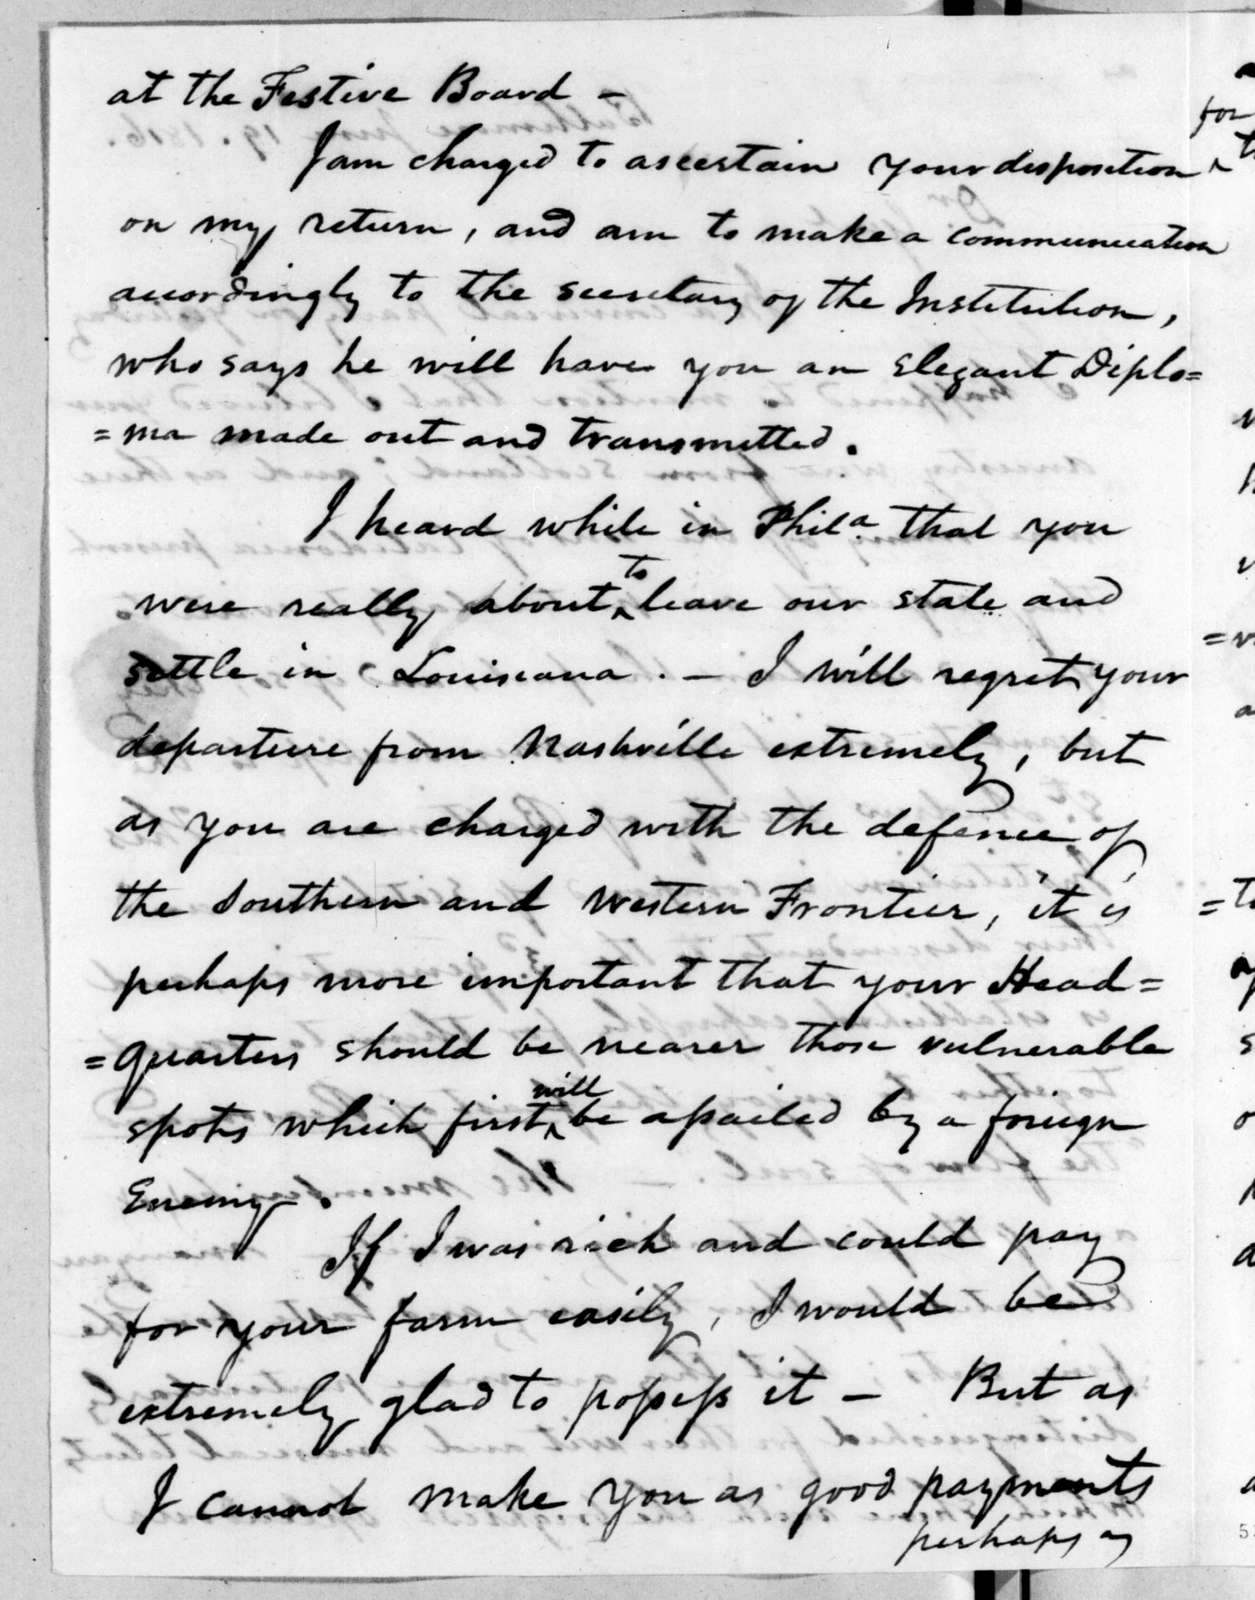 Andrew Hynes to Andrew Jackson, June 19, 1816